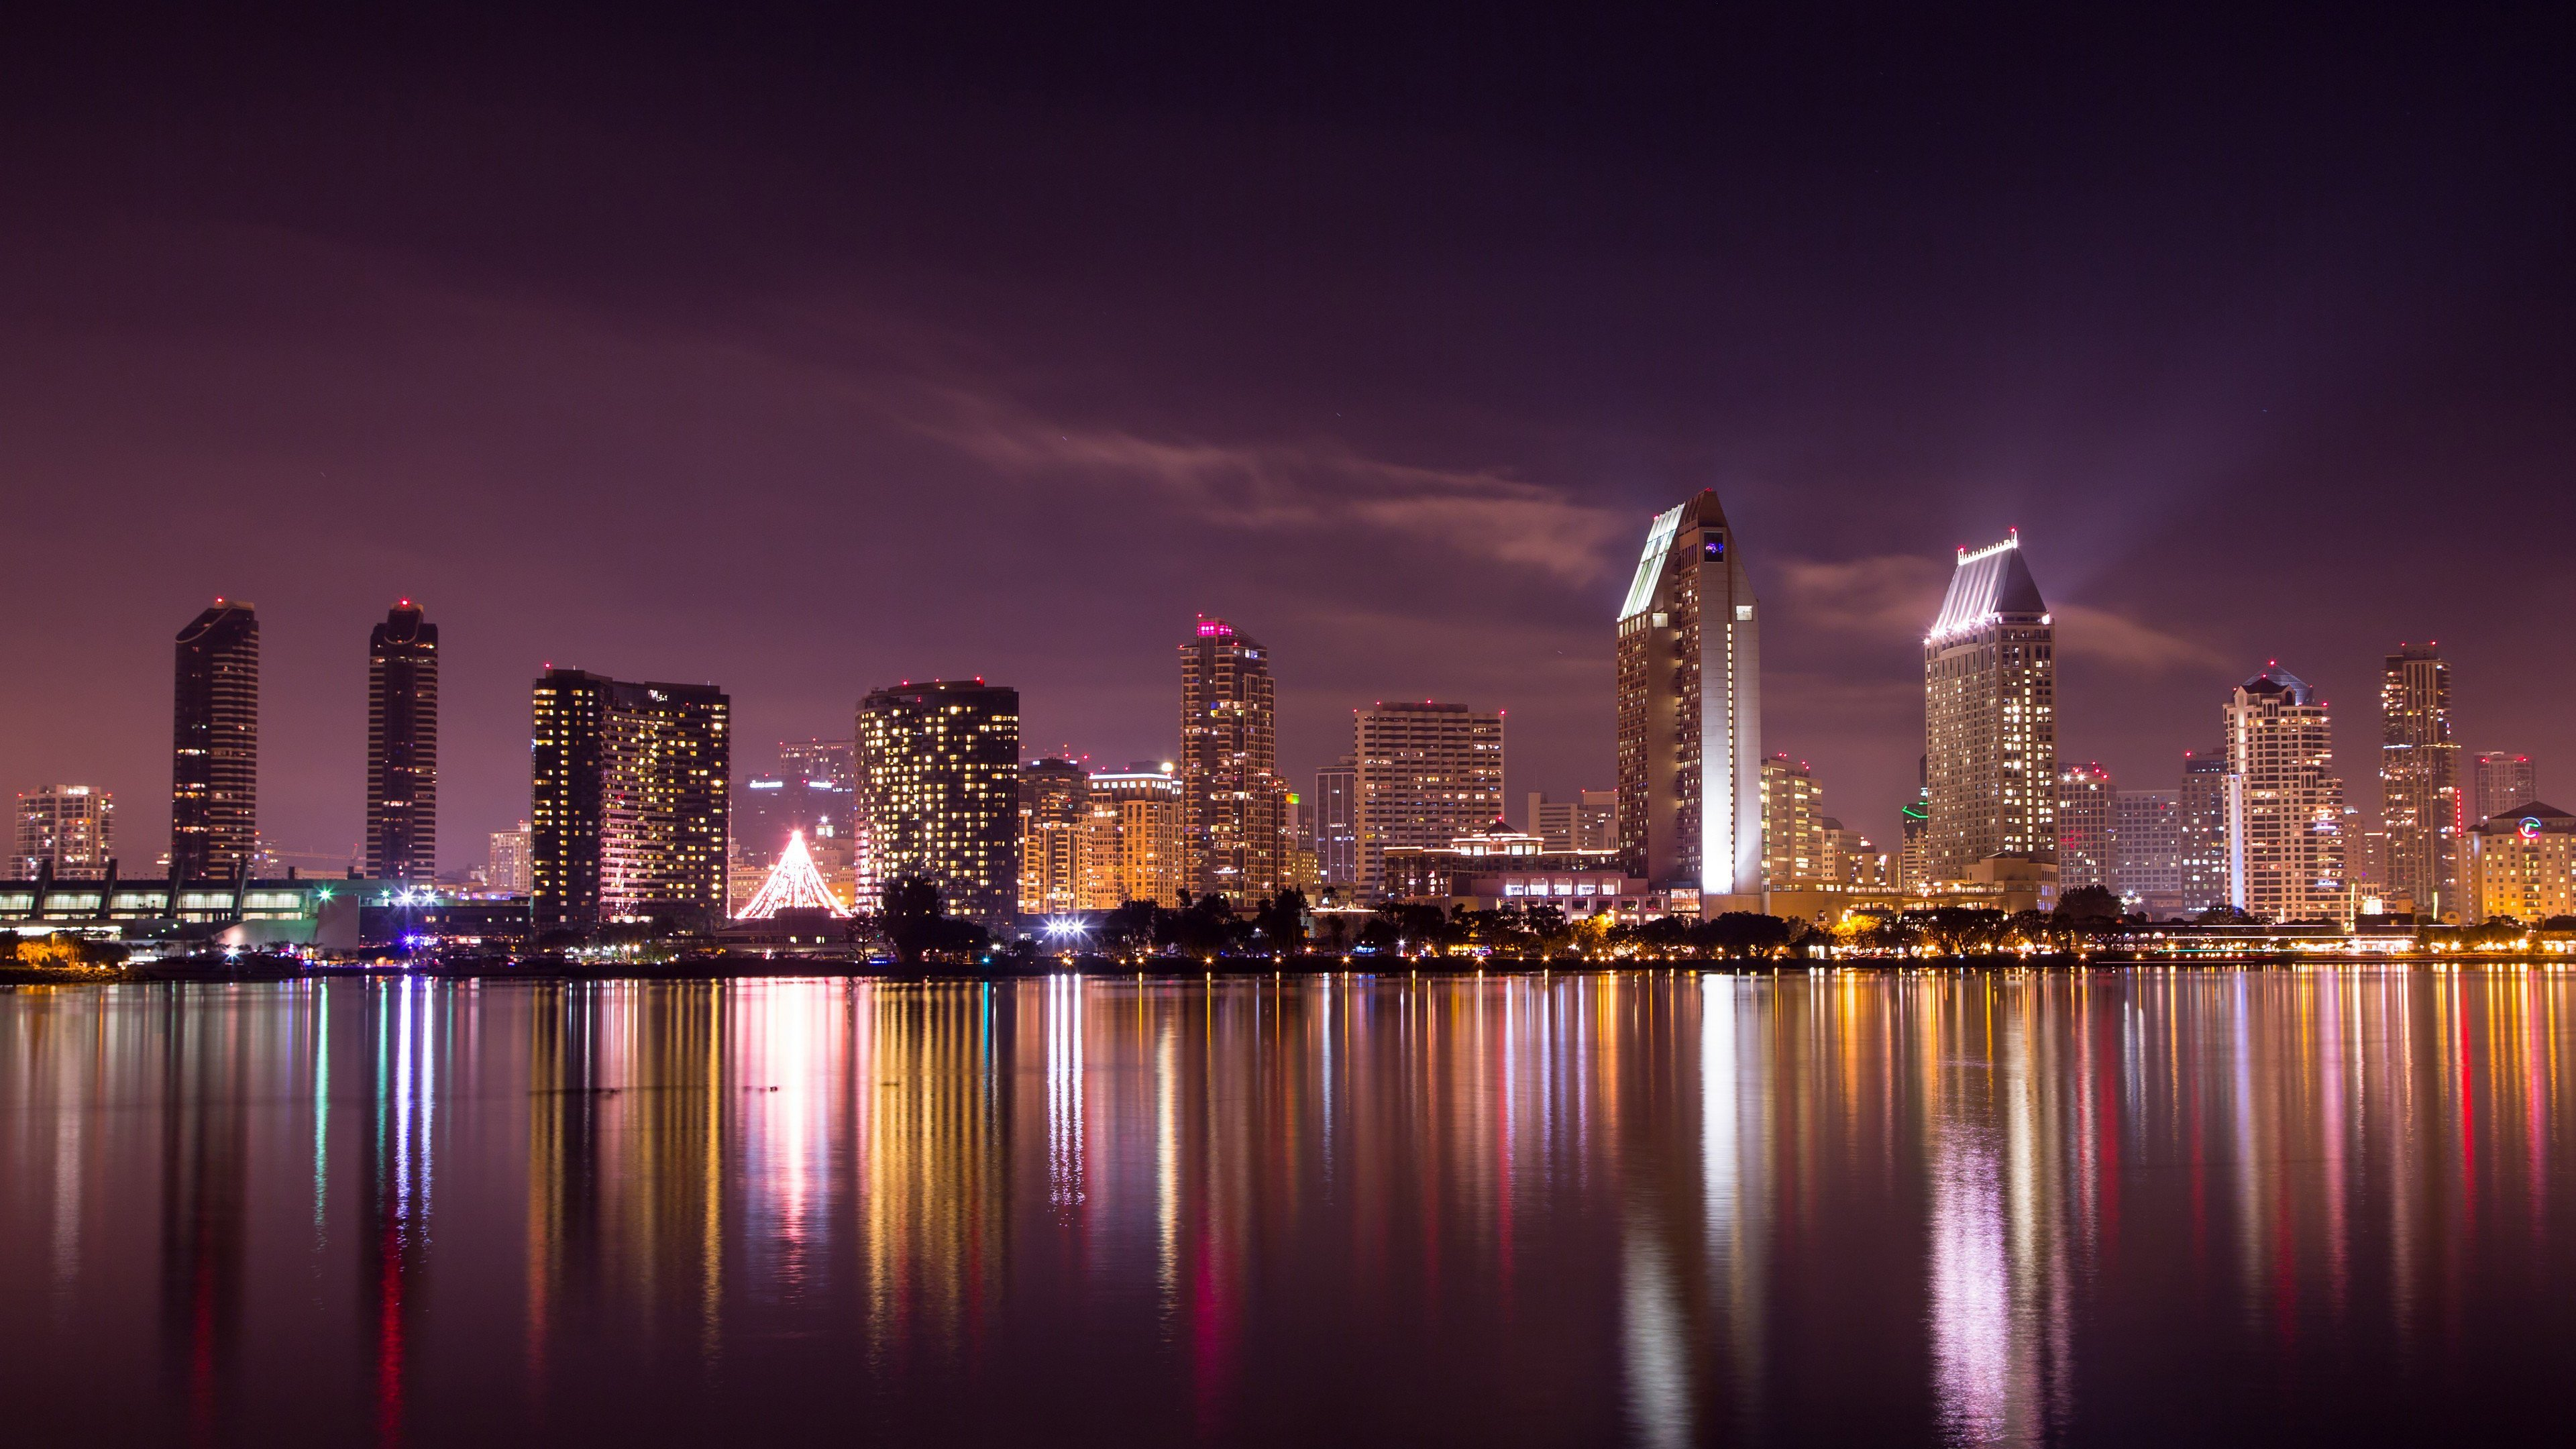 Wallpaper 4k San Diego Skyline City Wallpapers Hd Wallpapers Skyline Wallpapers World Wallpapers